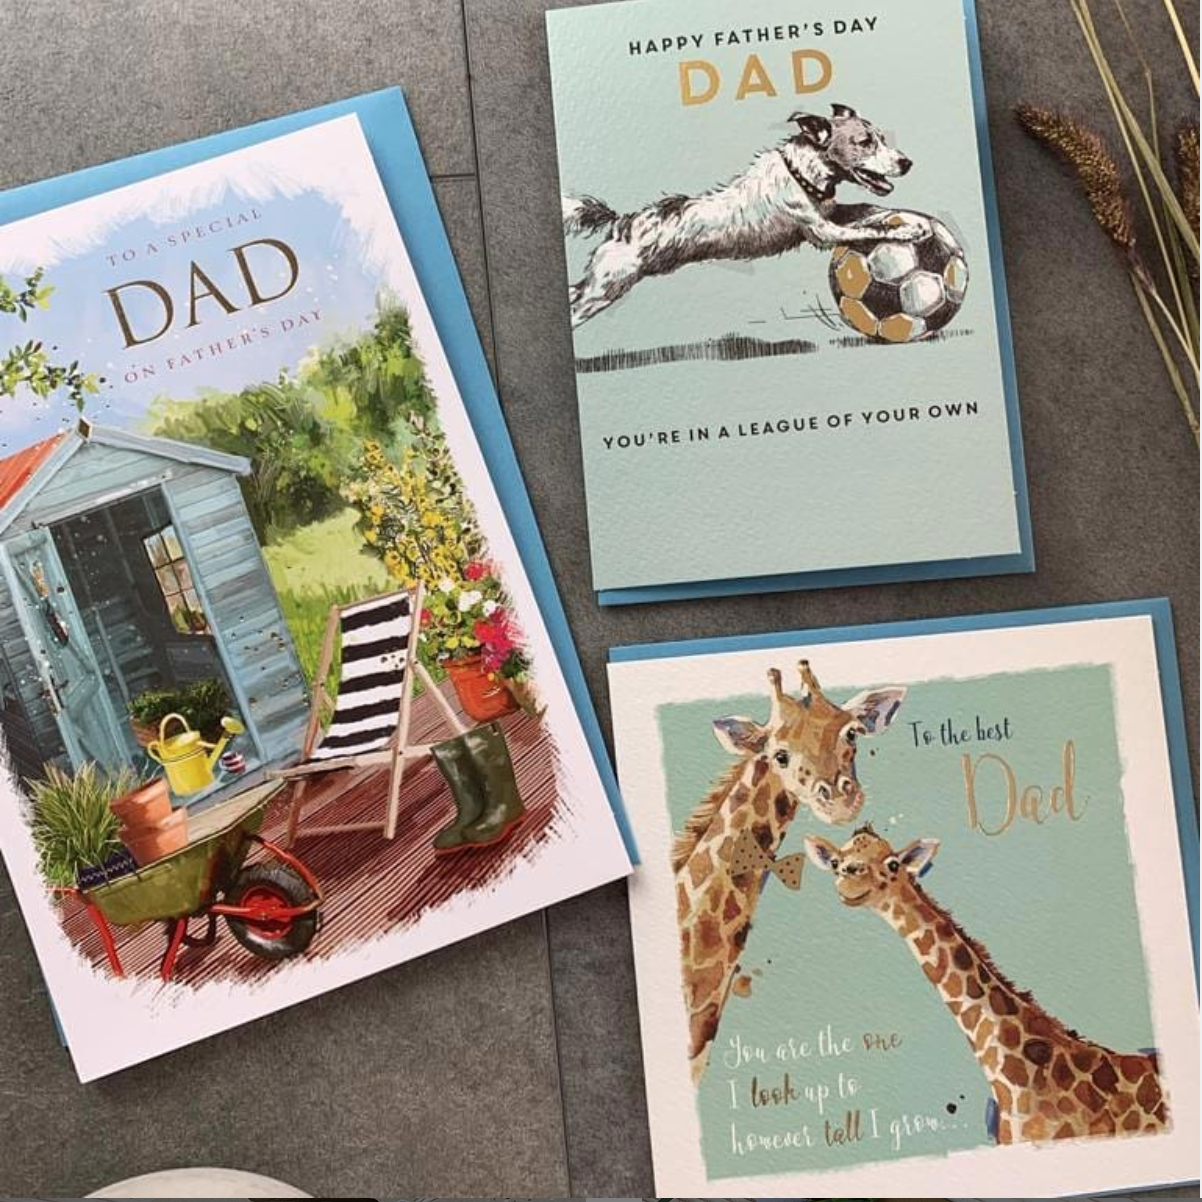 Above: A selection of Father's Day cards from Ling Design.